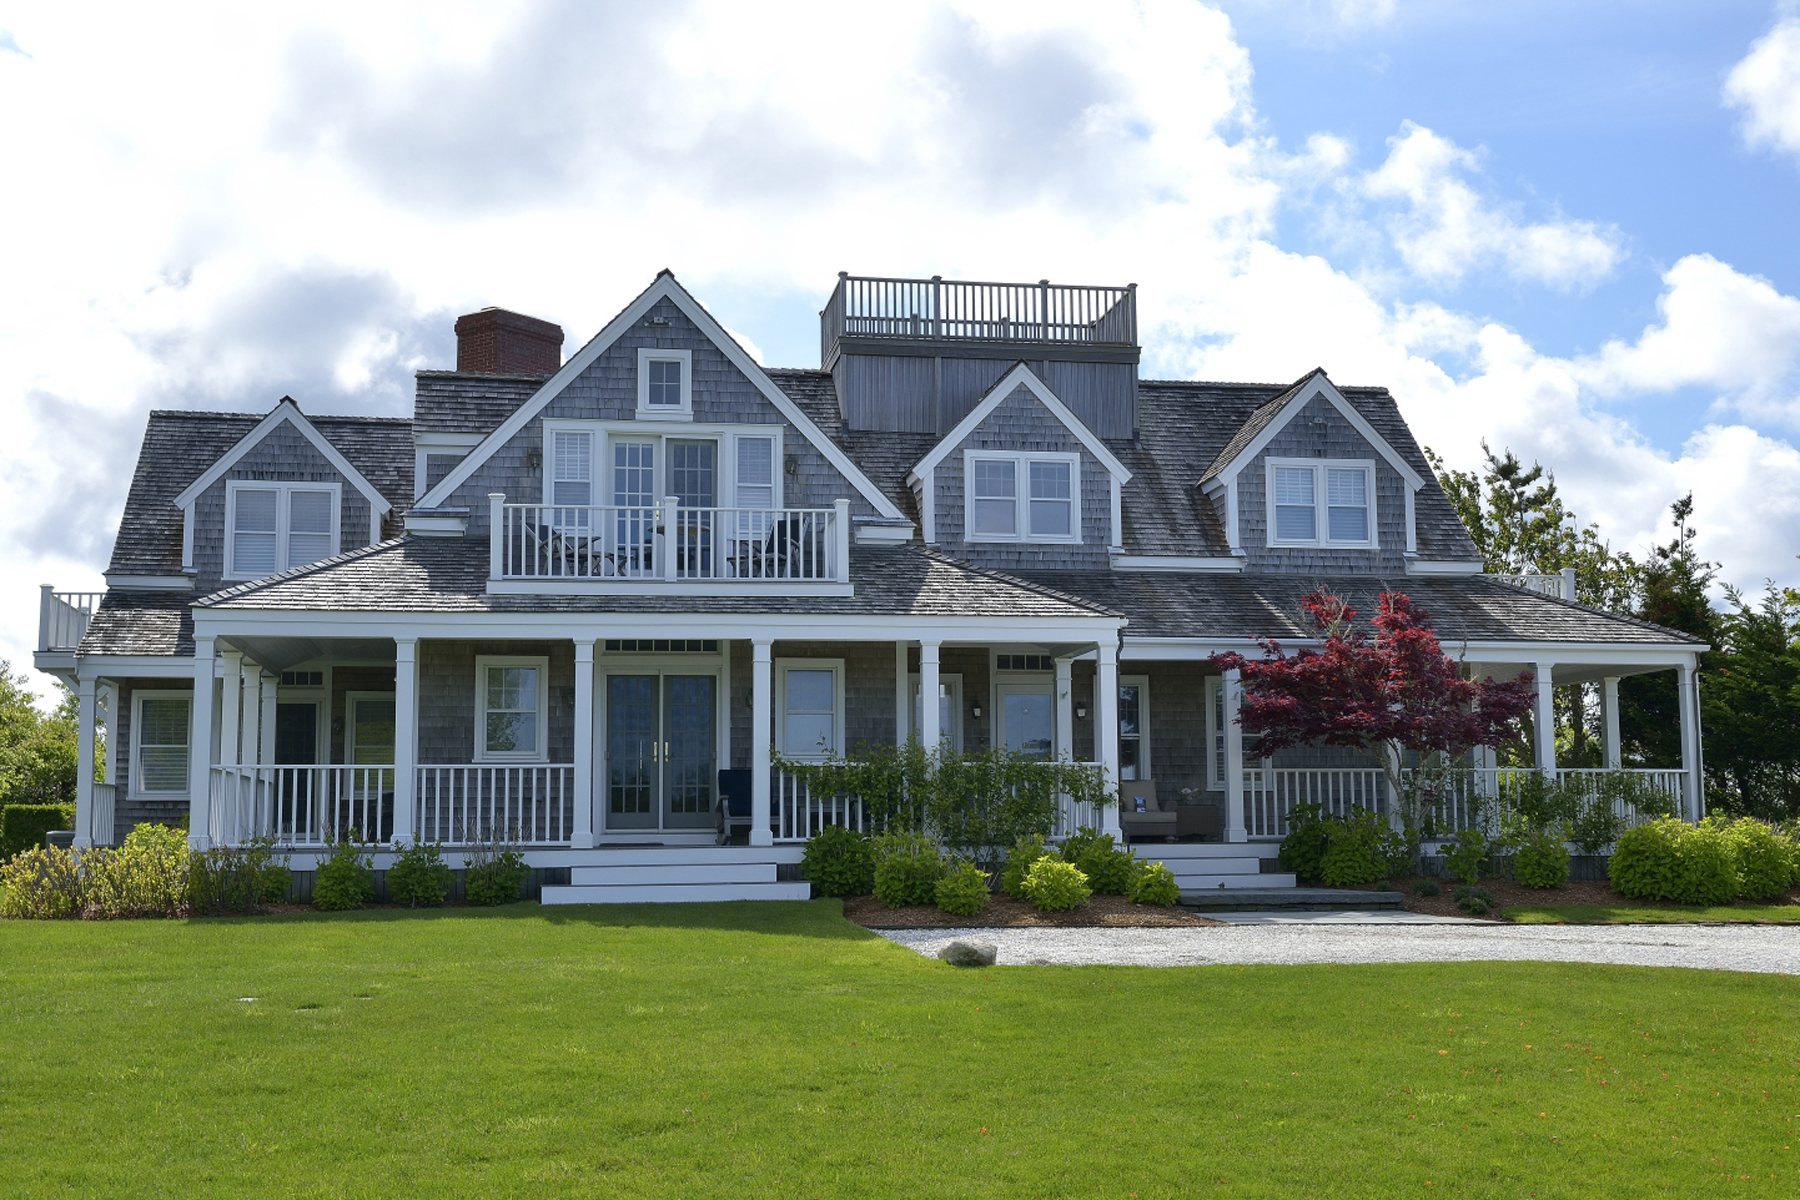 Casa Unifamiliar por un Venta en Exceptional Family Compound and Gorgeous Ocean Views 60 Squam Road Nantucket, Massachusetts, 02554 Estados Unidos